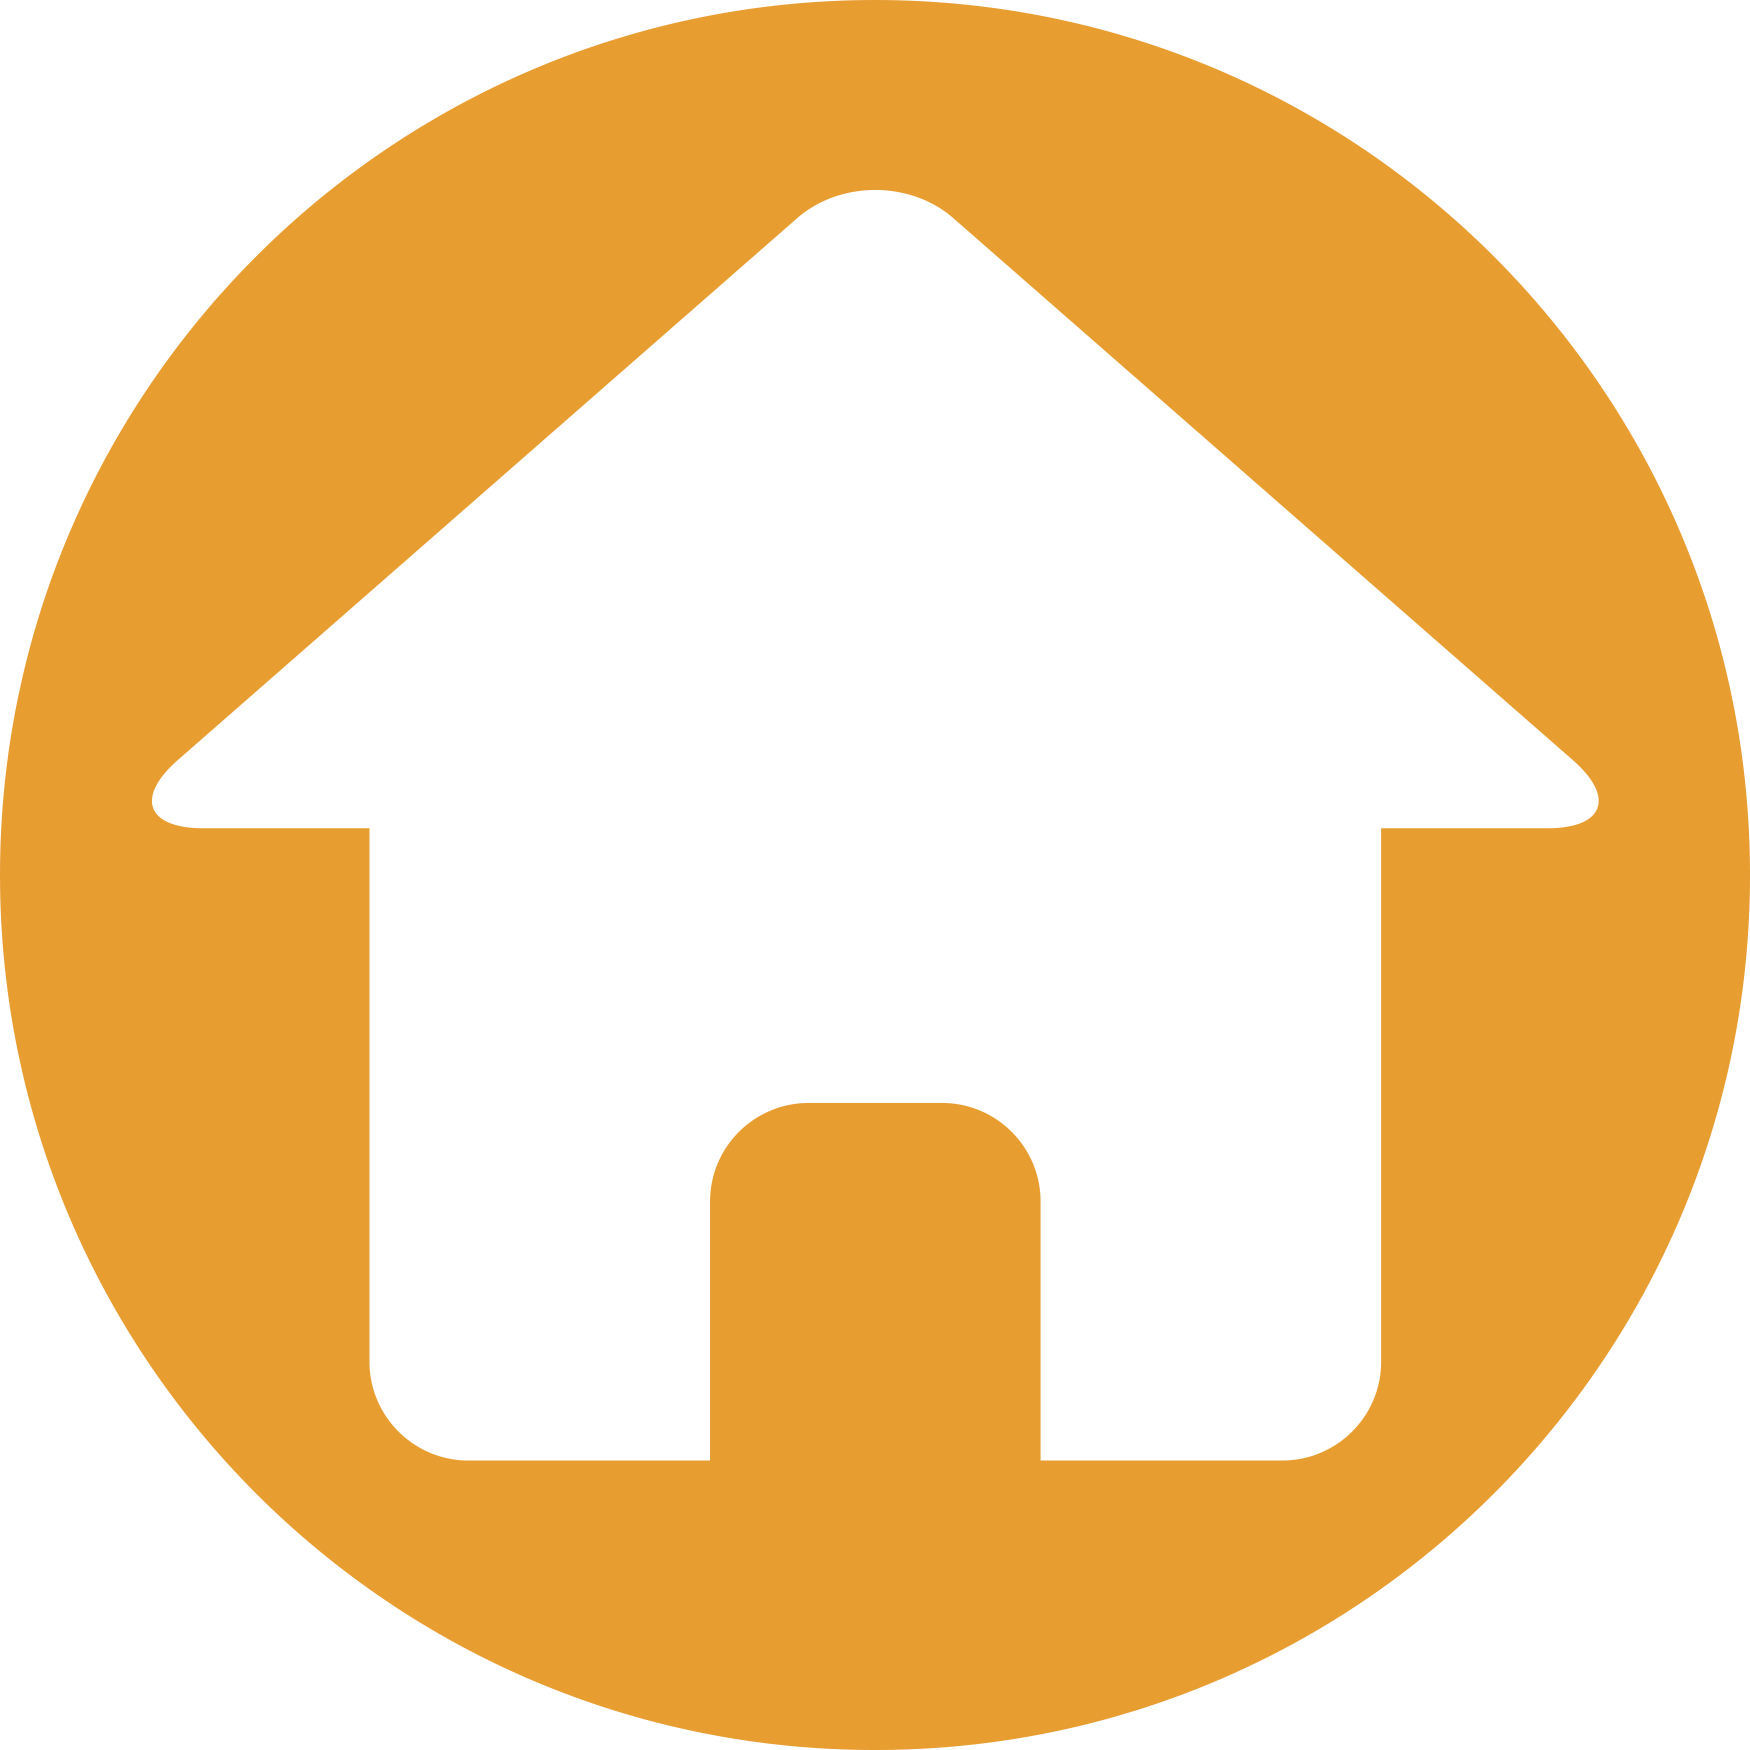 Free Download Of House Icon Clipart #190.